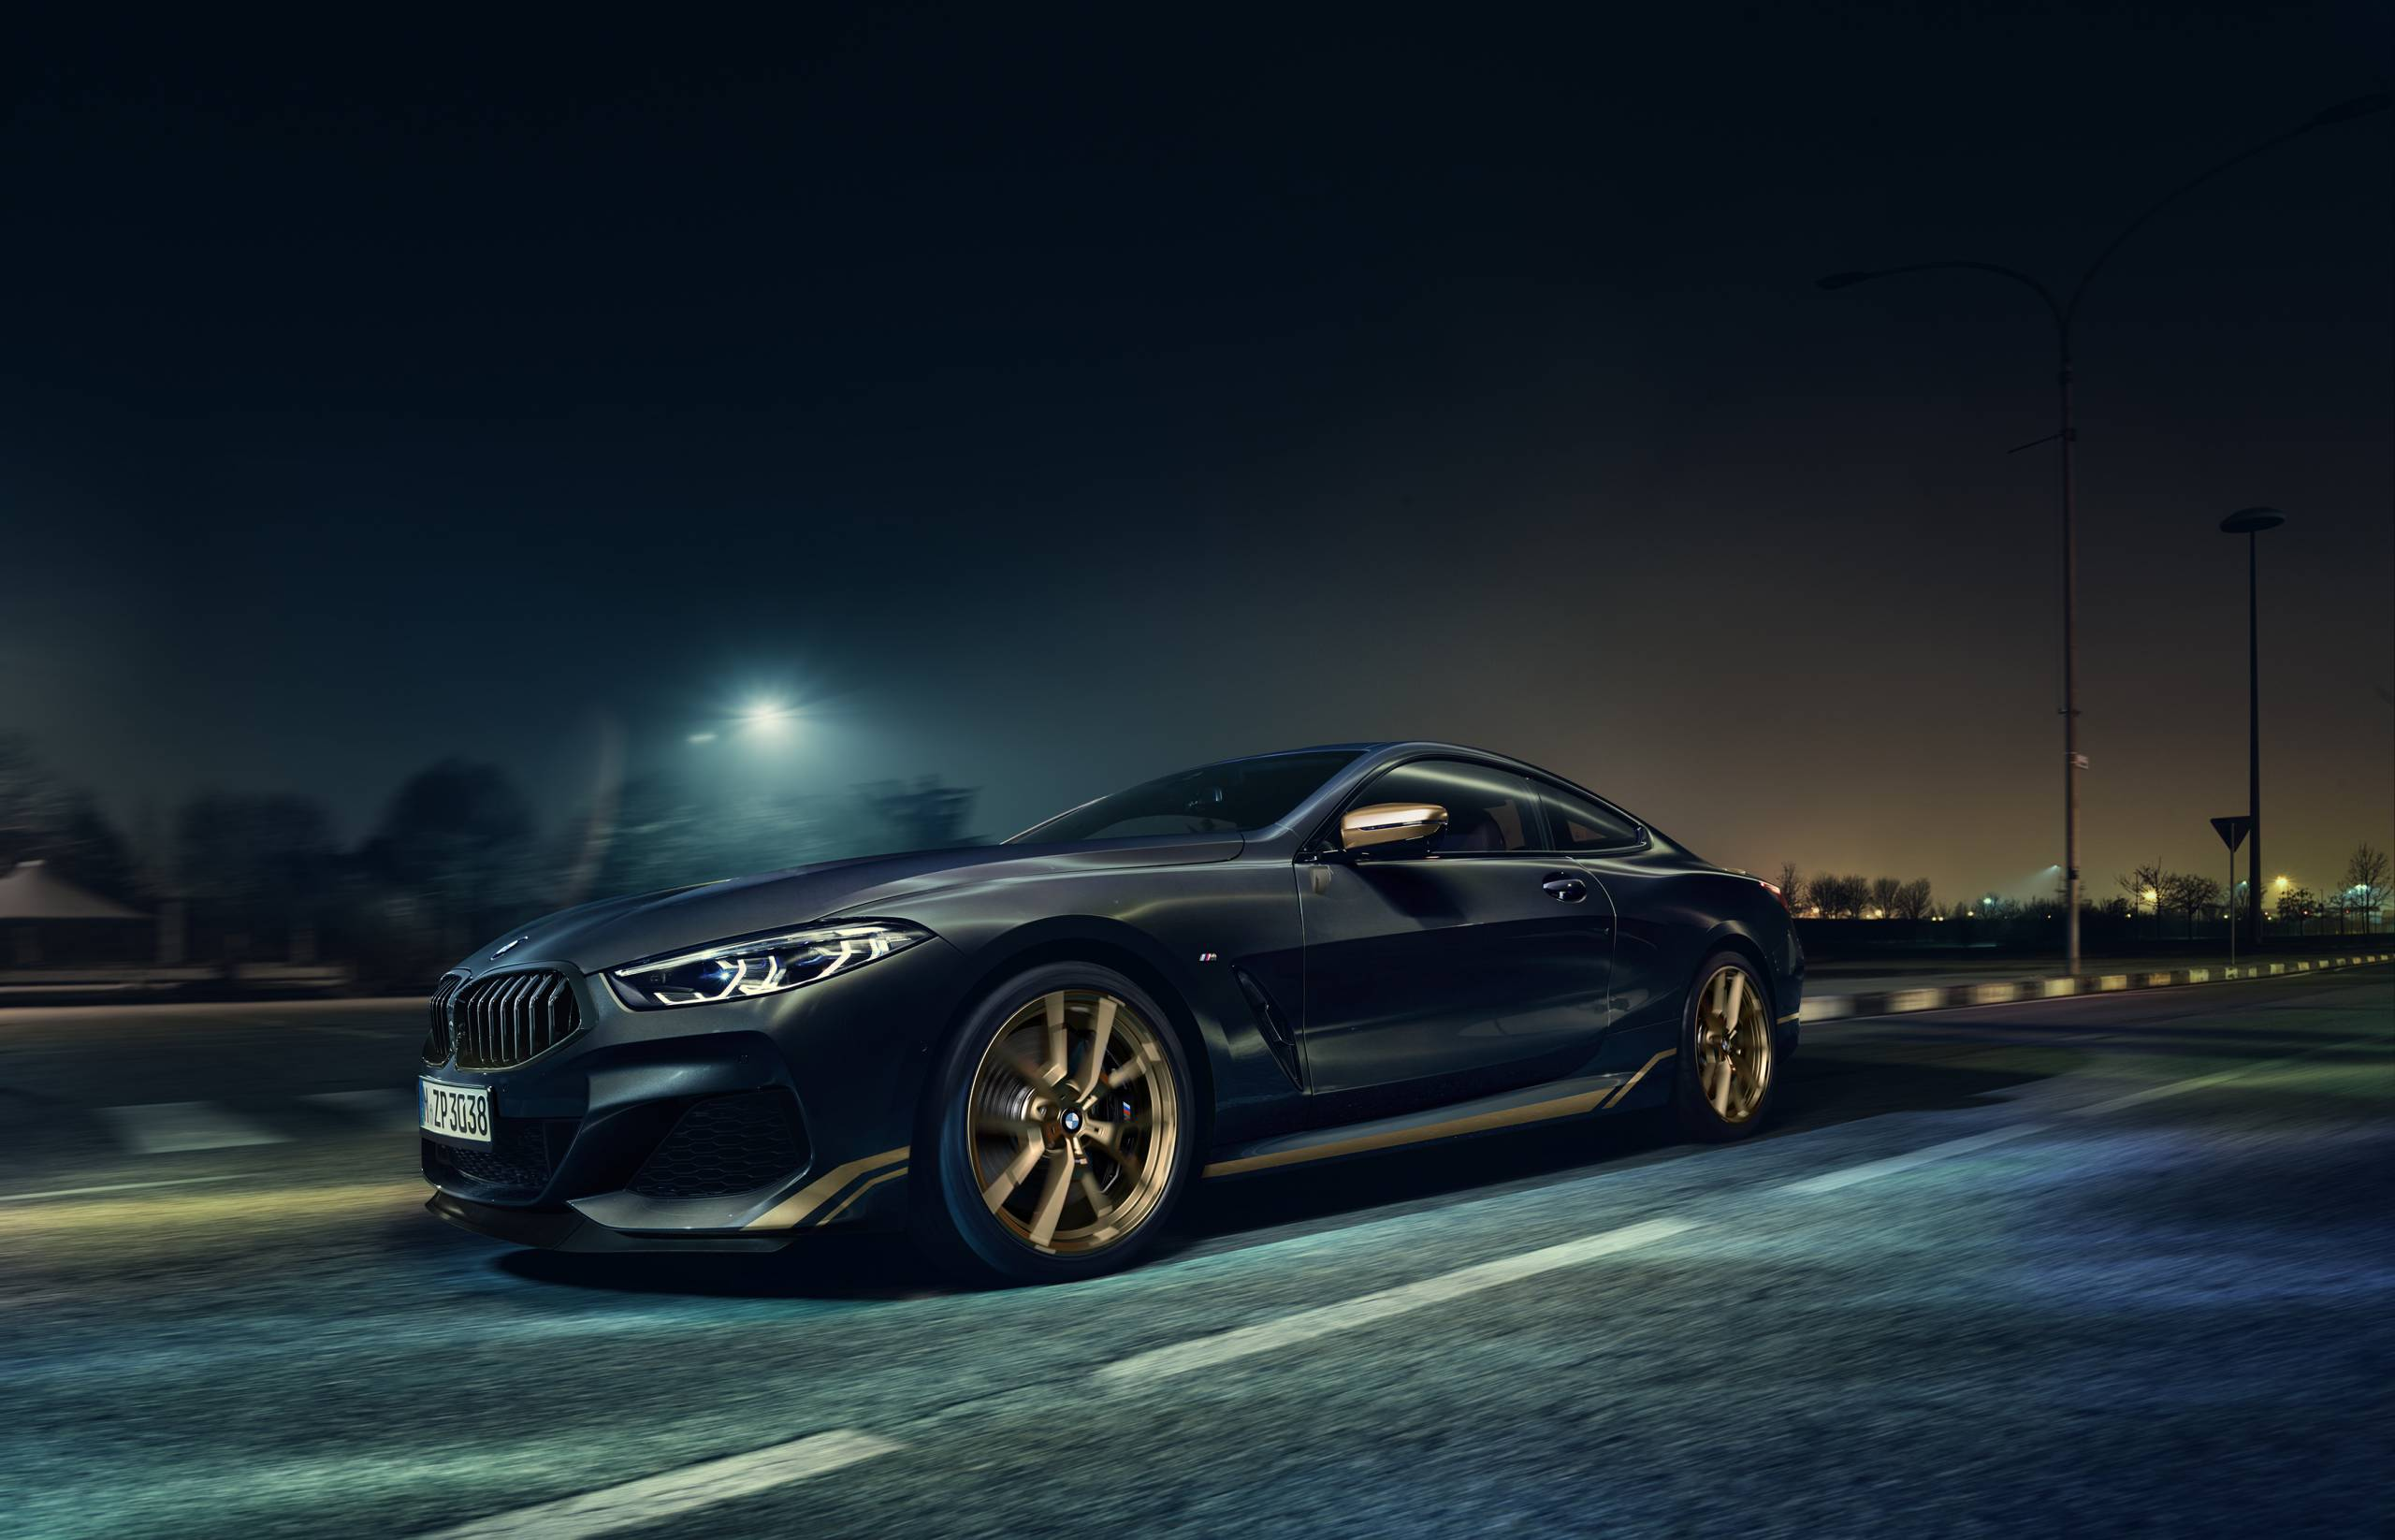 Bmw 8 Series Golden Thunder Edition Has A Black And Gold Theme Slashgear